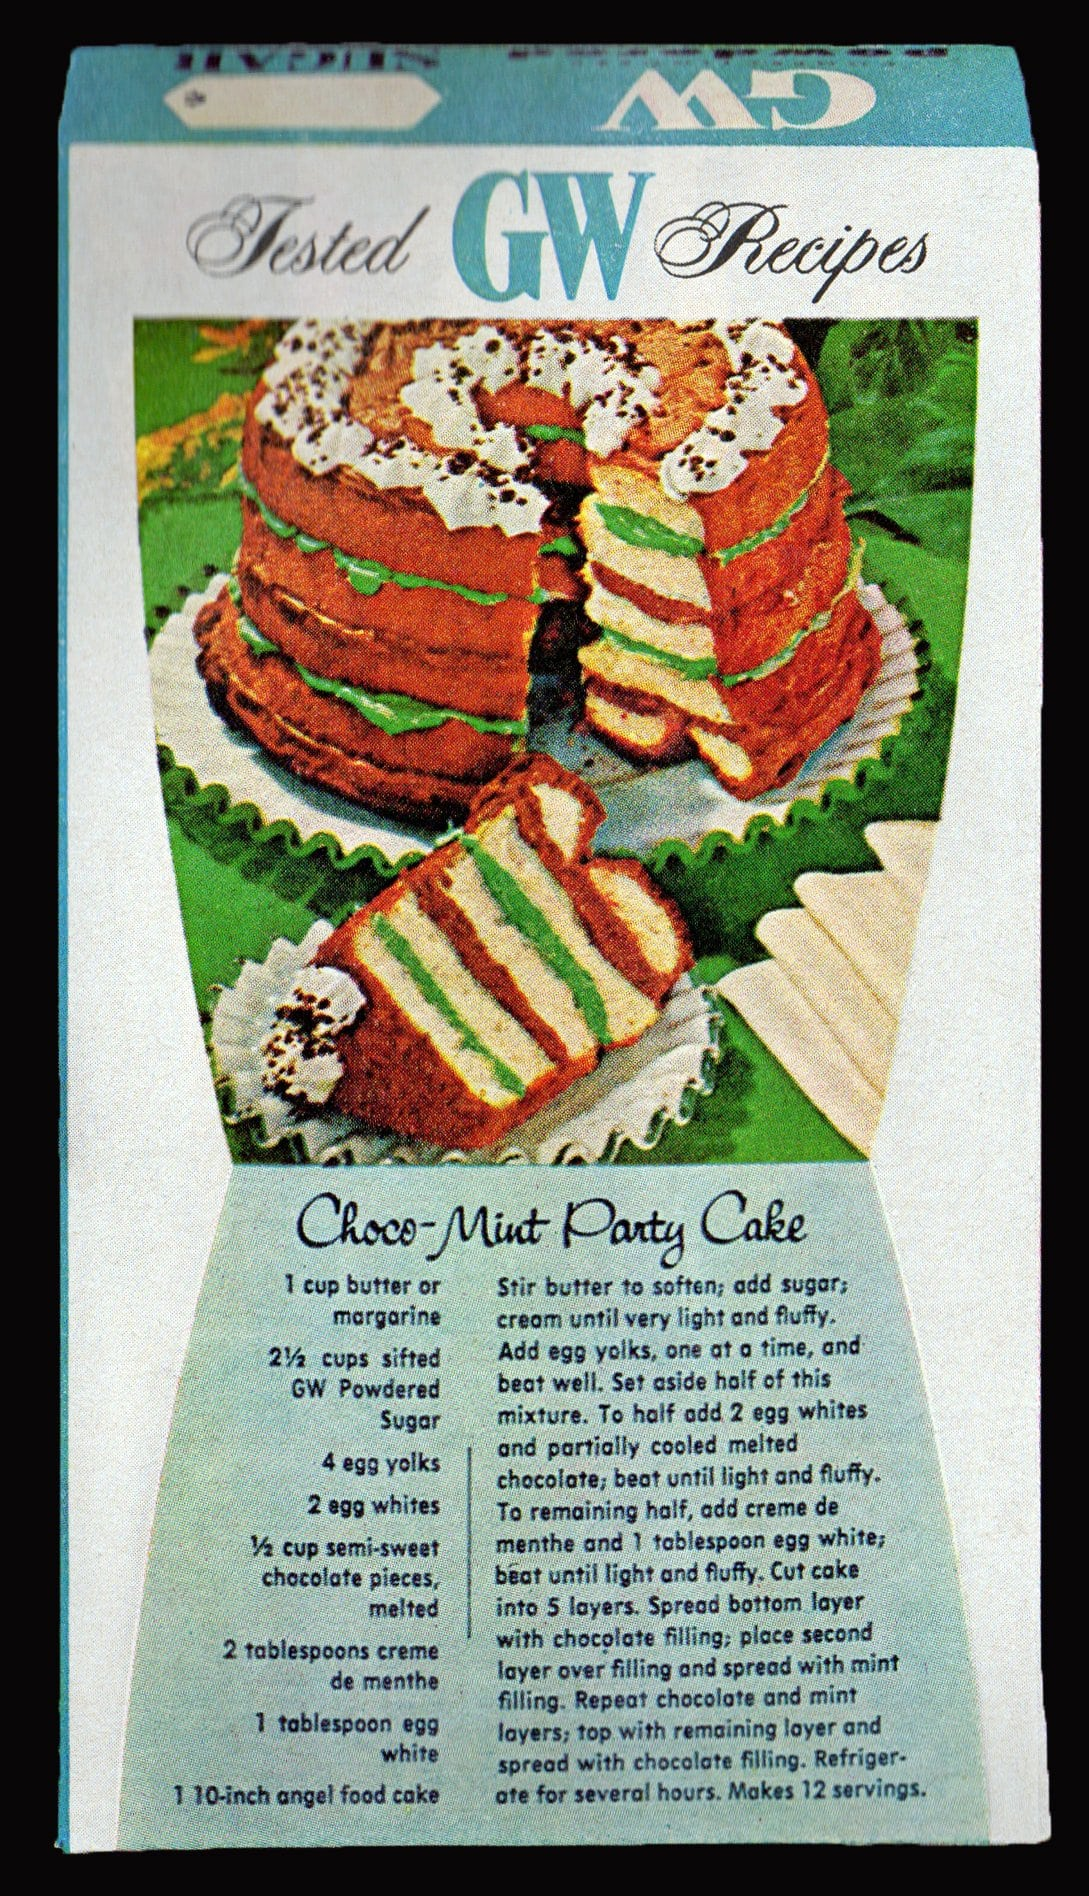 Vintage choco-mint party cake recipe (1967)